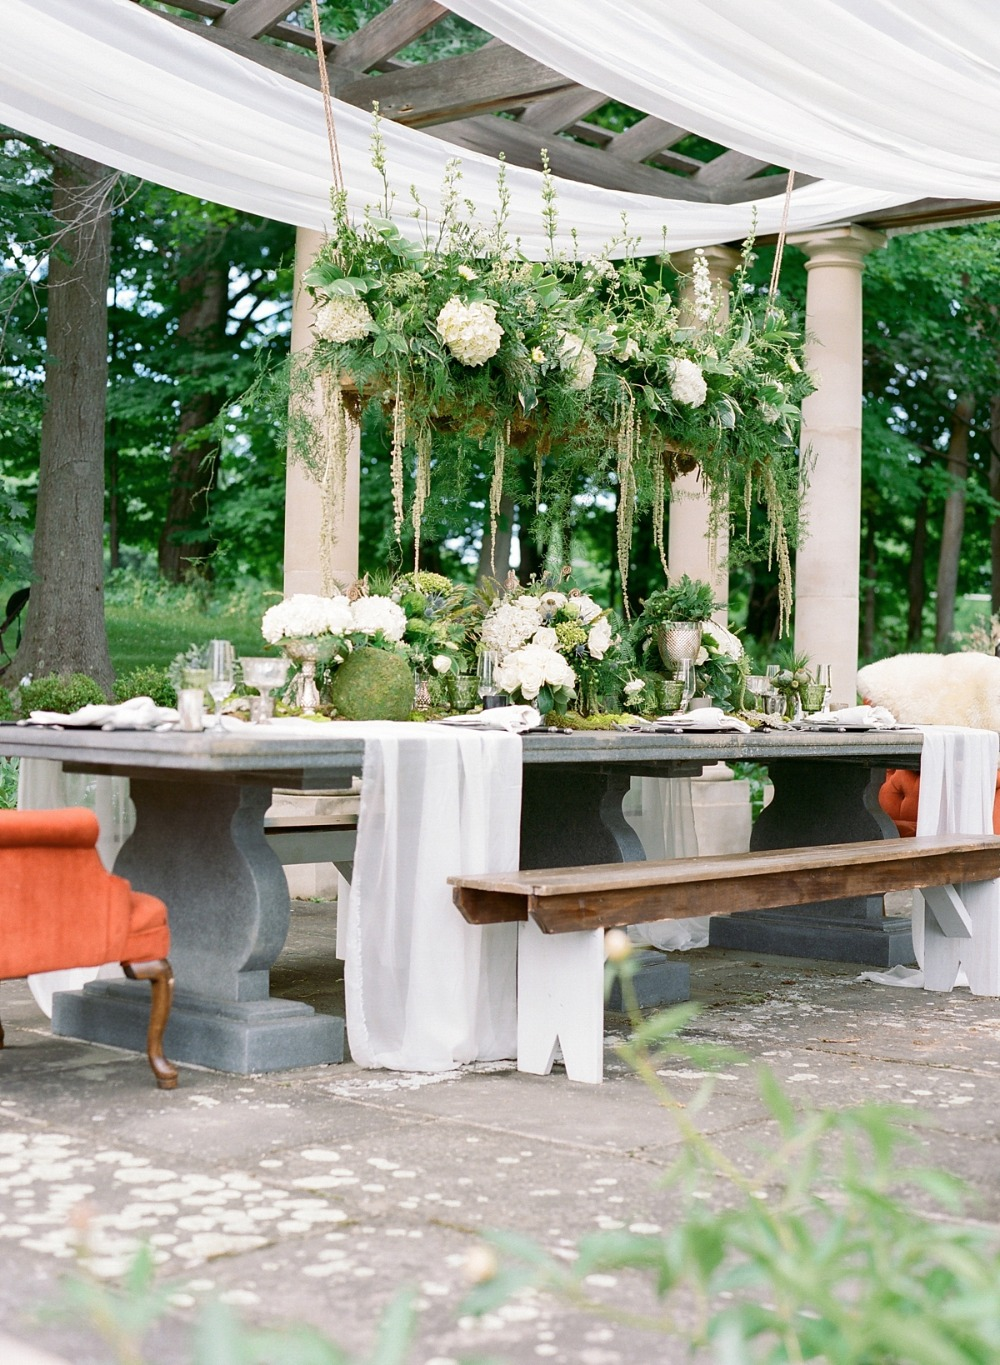 Beautiful natural tablescape with stone table